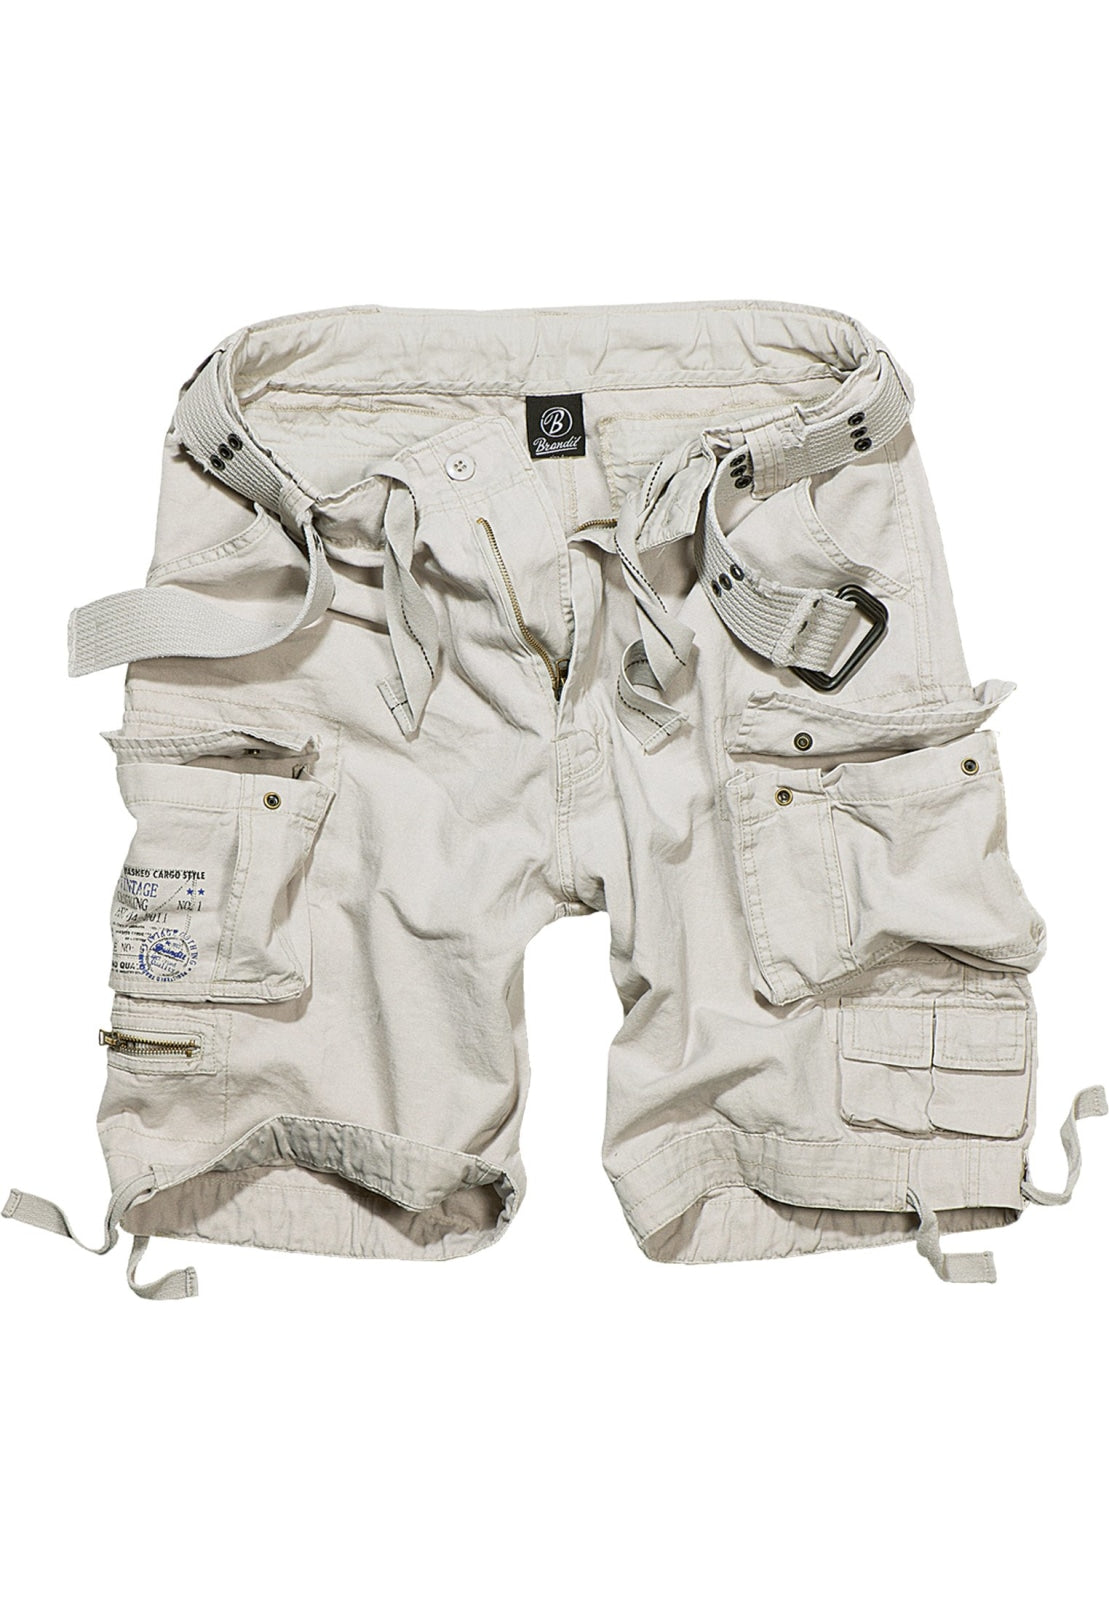 Savage Vintage Cargo Shorts (9 Colors | Sizes s - 7xl) White / s Pants Brandit